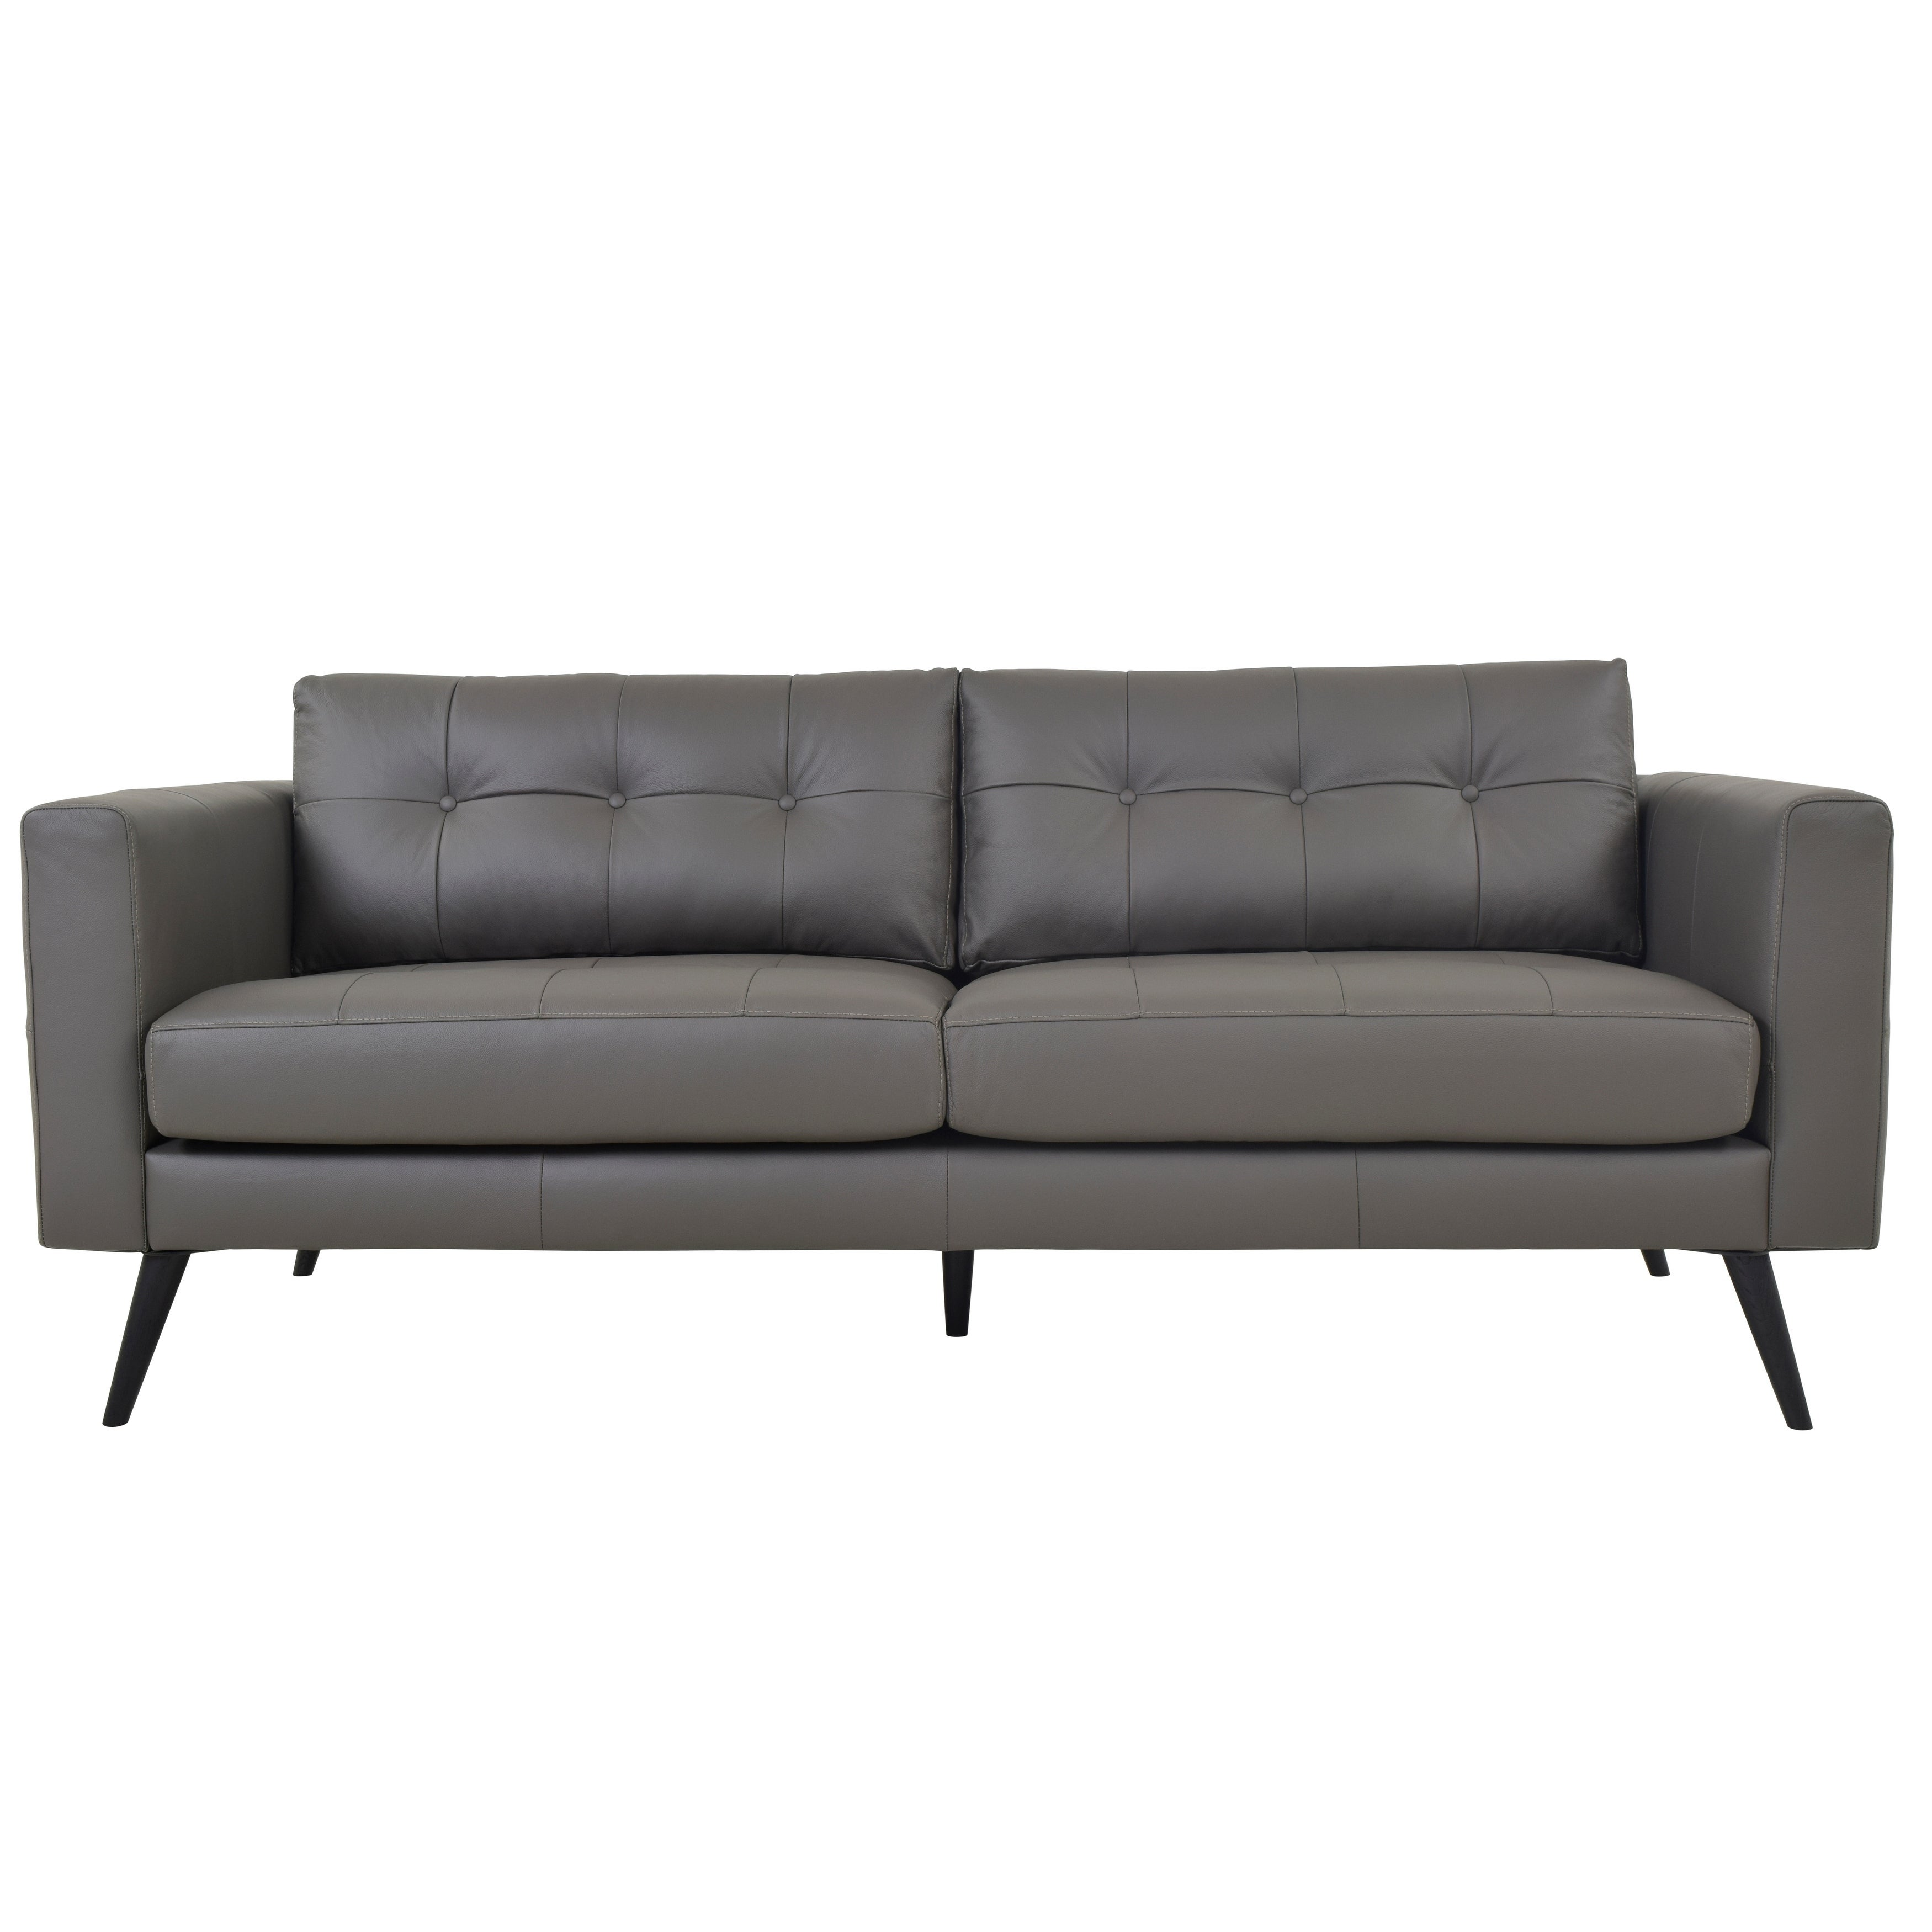 Shop Aurelle Home Scandinavian Soft Leather Sofa   On Sale   Free Shipping  Today   Overstock.com   18706992